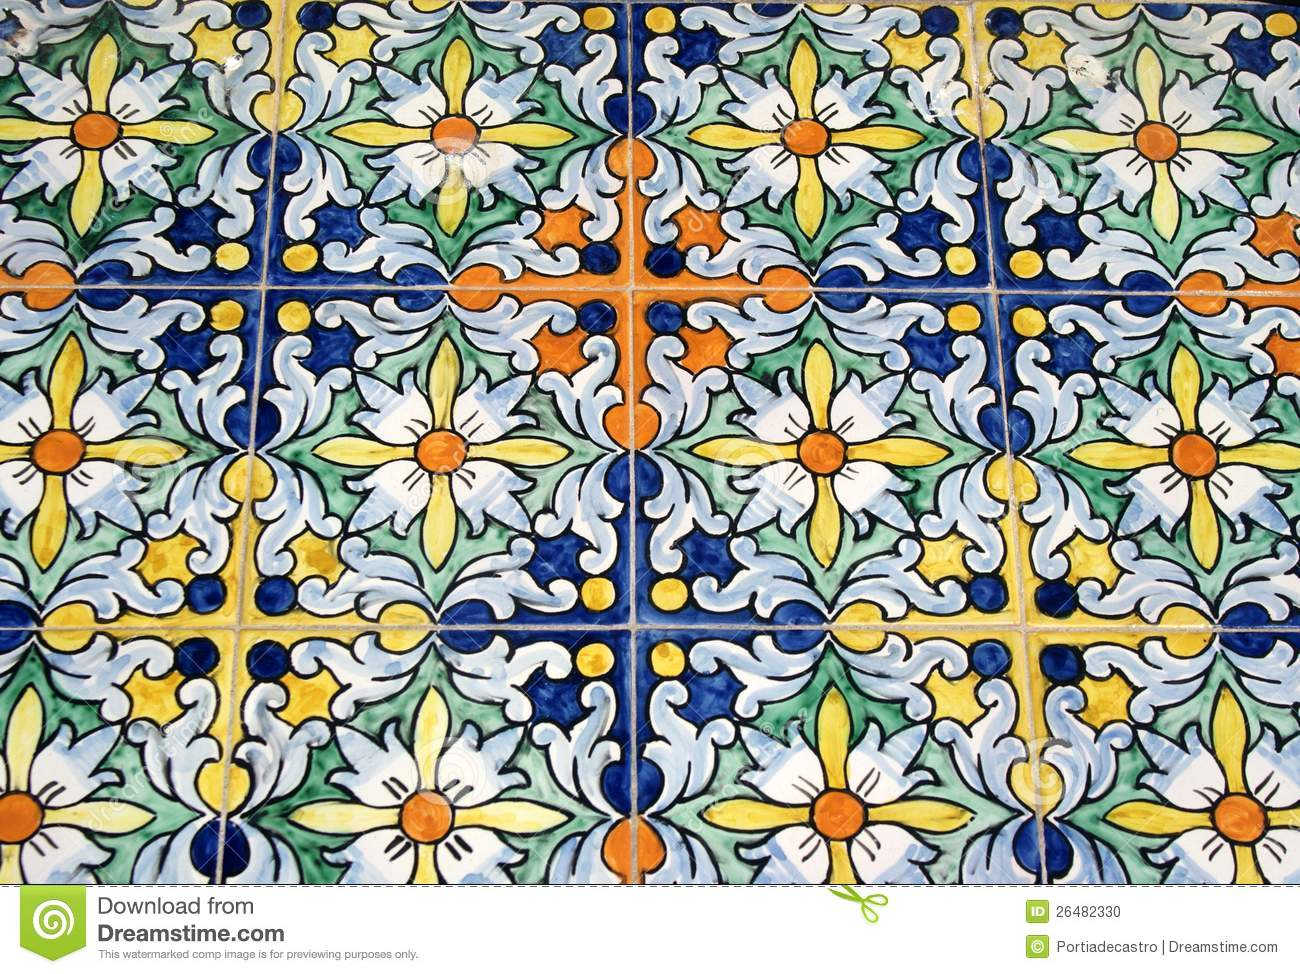 Stock Photo Old Typical Spanish Tiles Image26482330 additionally 1989 Porsche 944 S2 photo furthermore Wspaniala Szafka Na Przyprawy Shabby Chic furthermore Stojak Na Papier Toaletowy W Stylu Prowansalskim further Sielski Pejzaz Holenderski. on international style